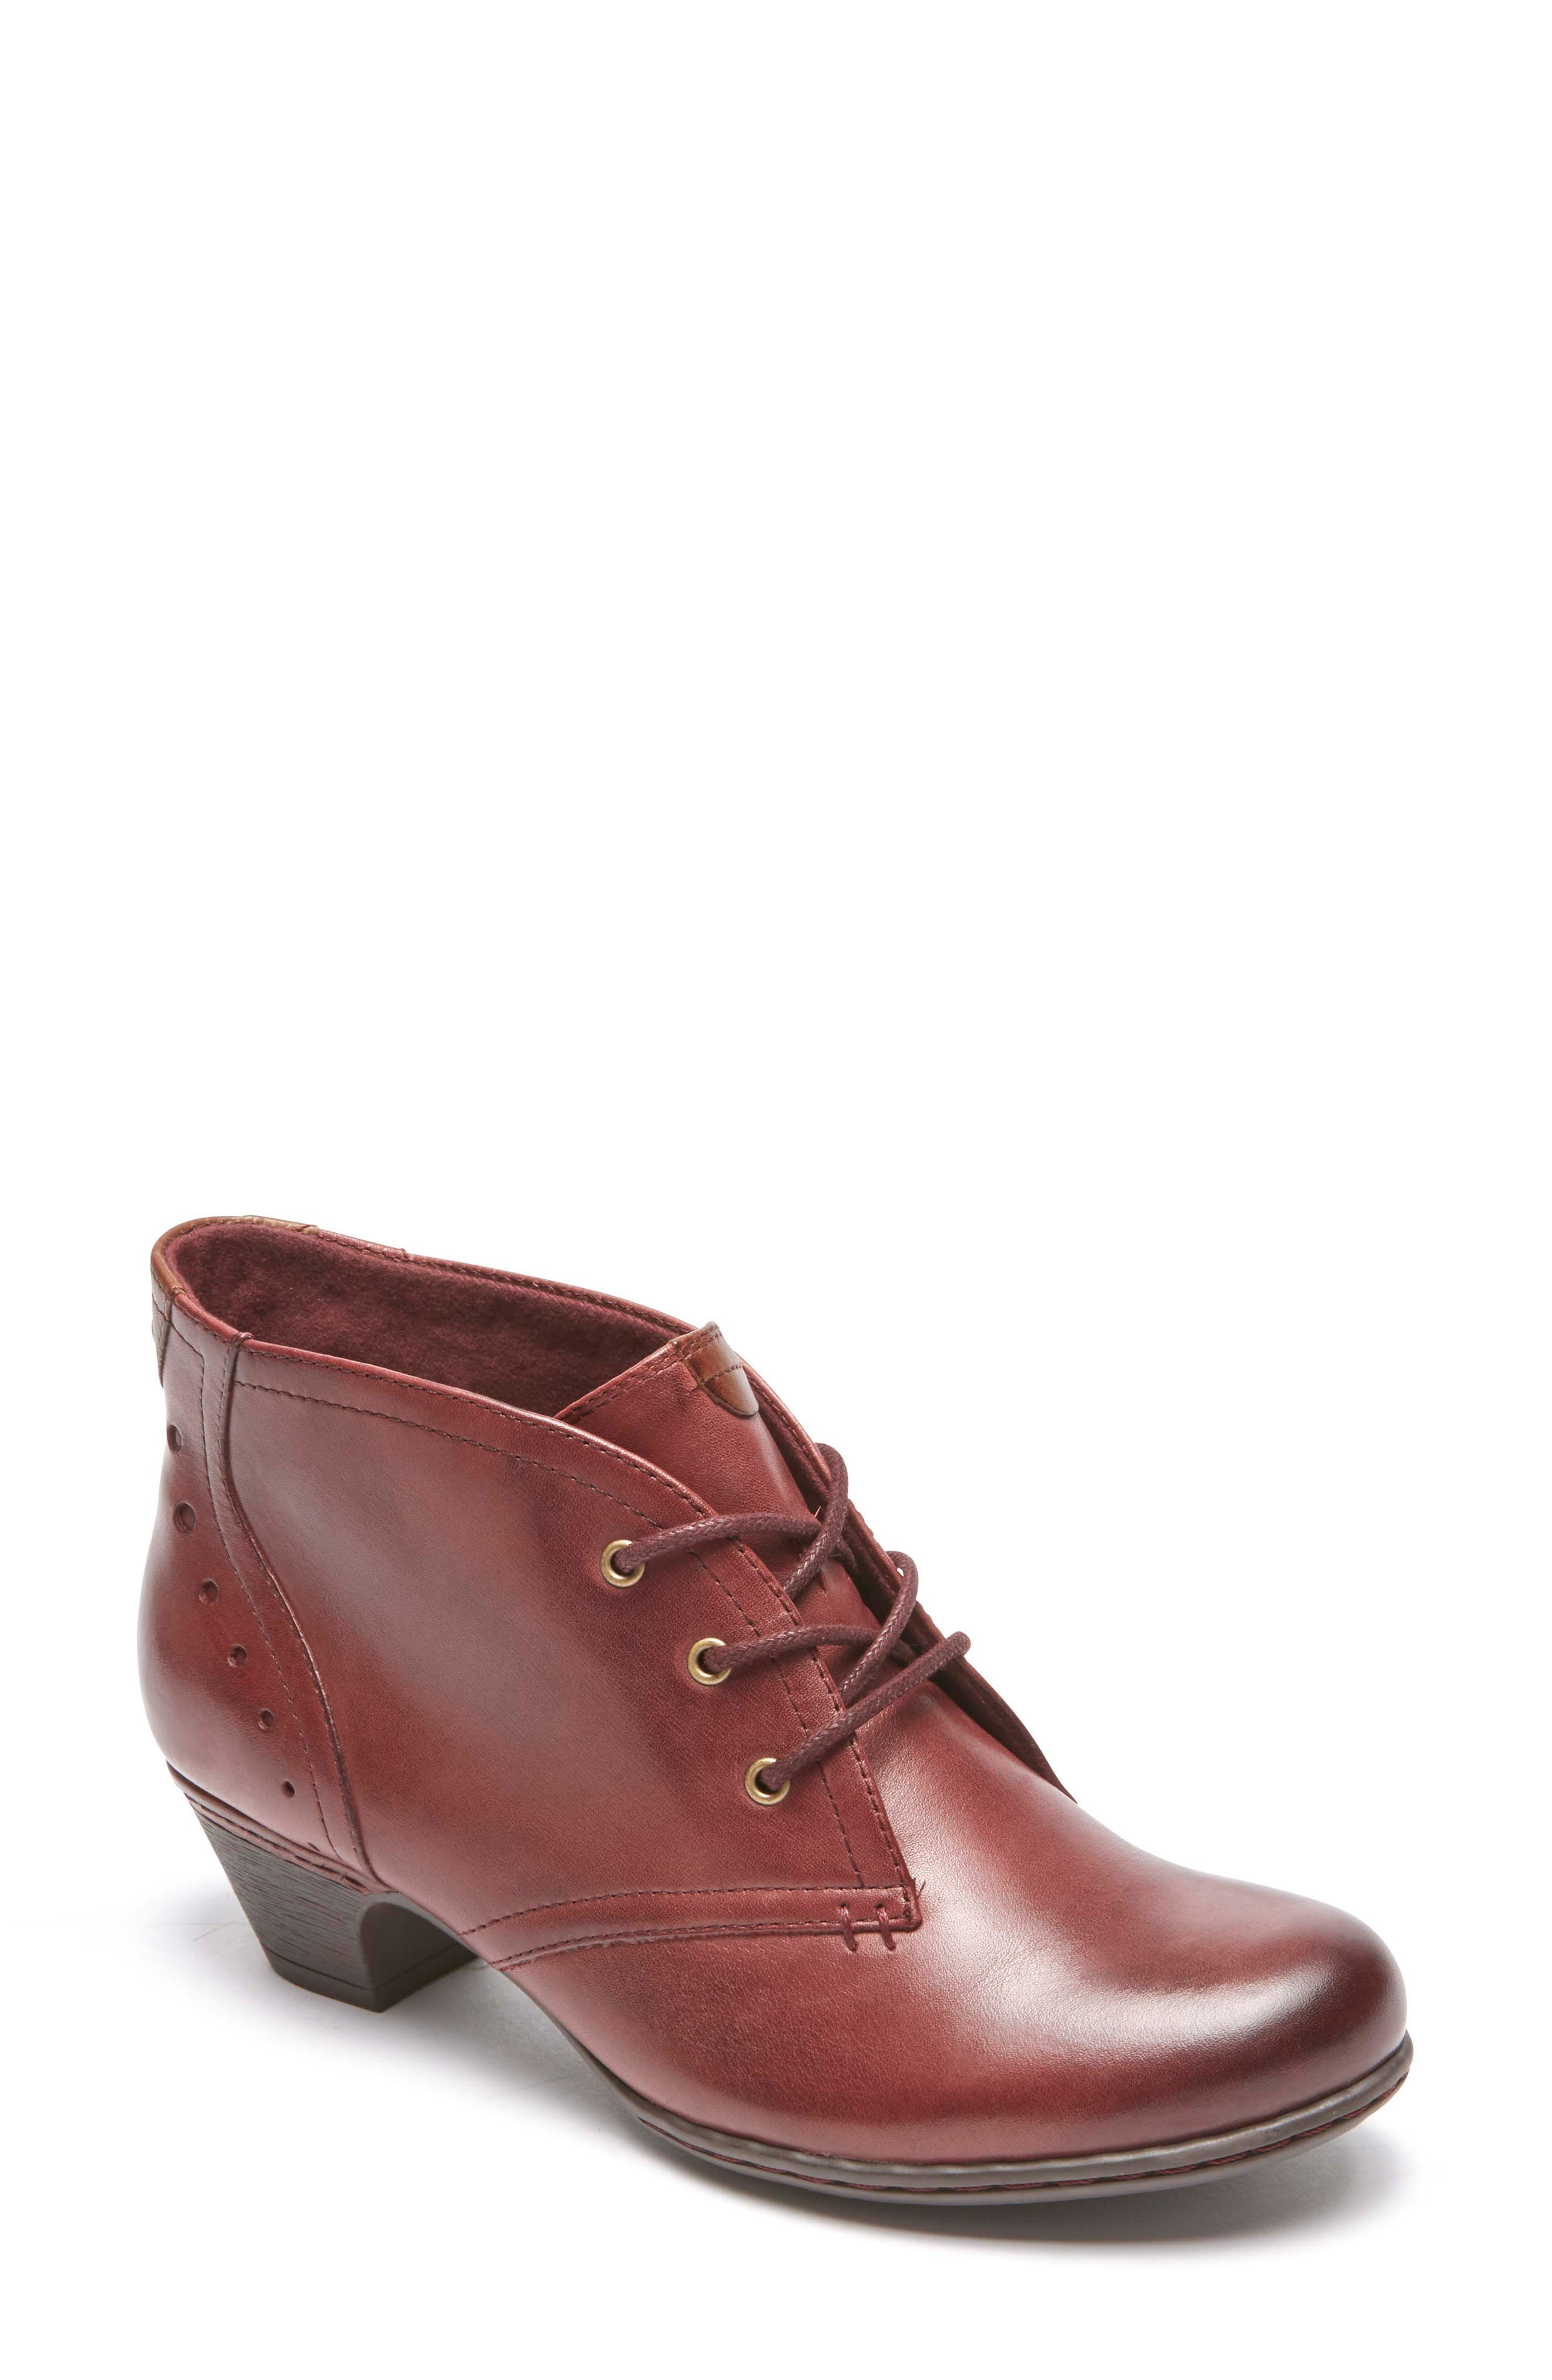 Aria Leather Boot,                             Main thumbnail 1, color,                             MERLOT LEATHER